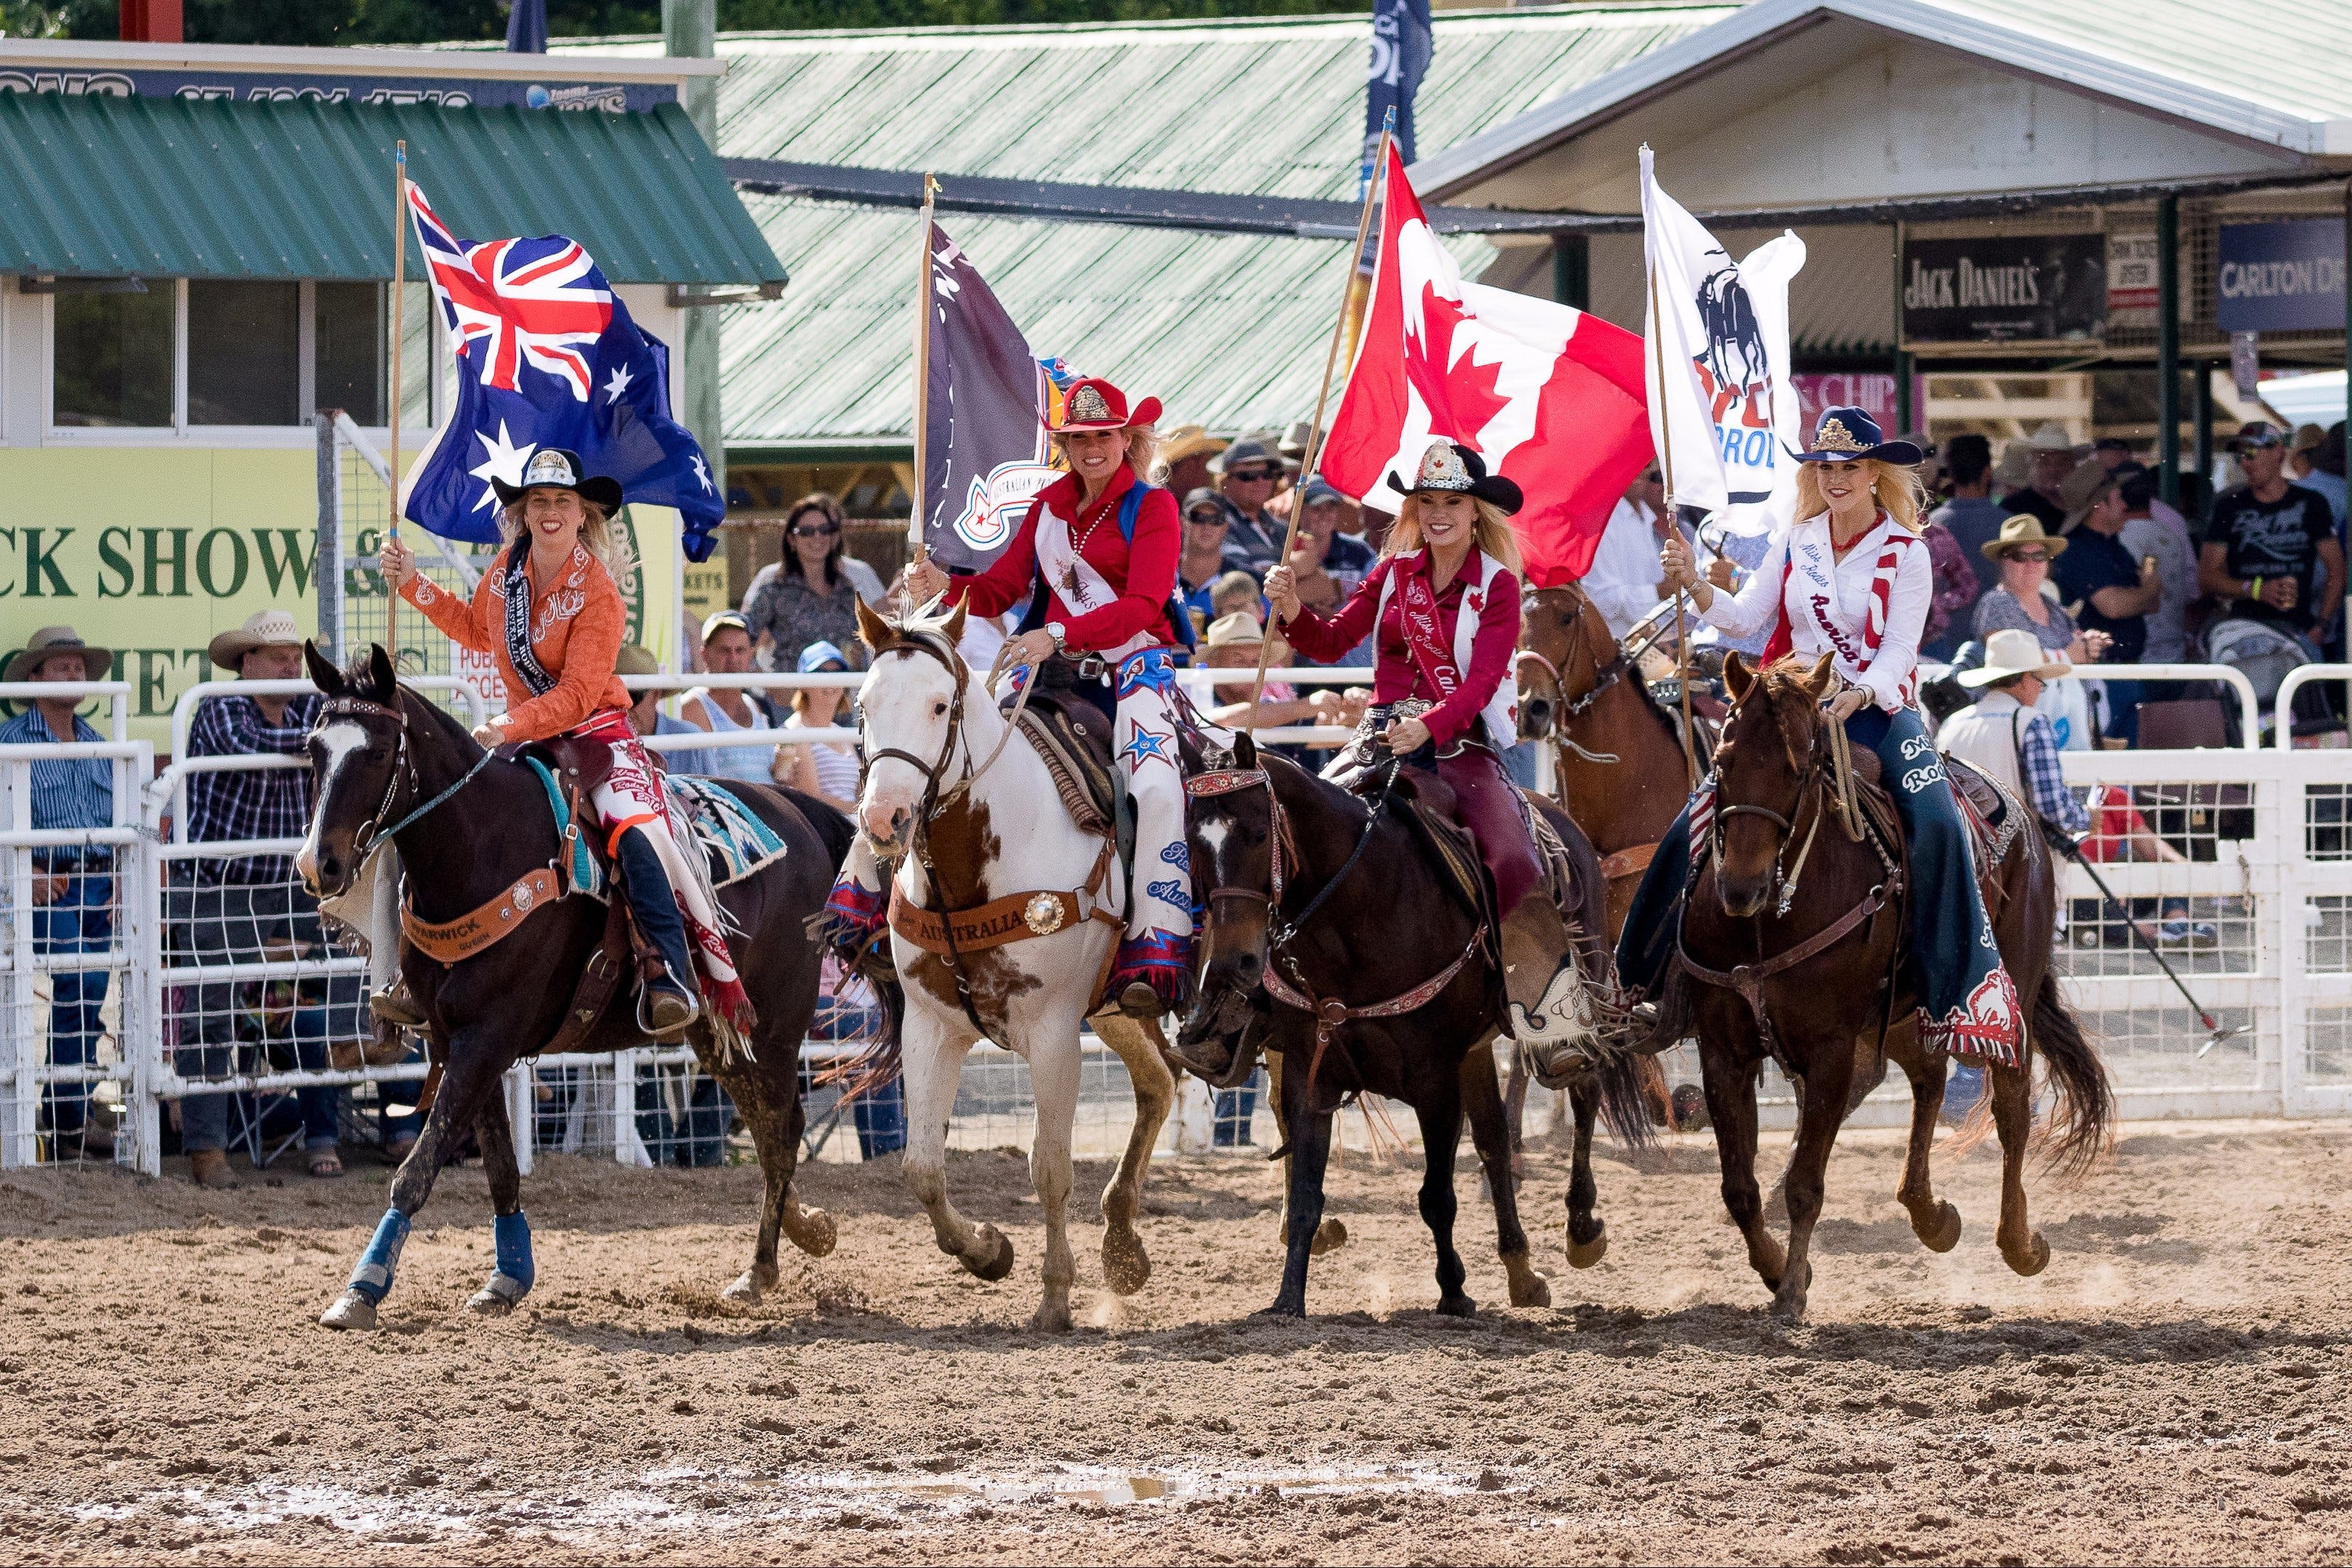 Warwick Rodeo National APRA National Finals and Warwick Gold Cup Campdraft - Sydney Tourism